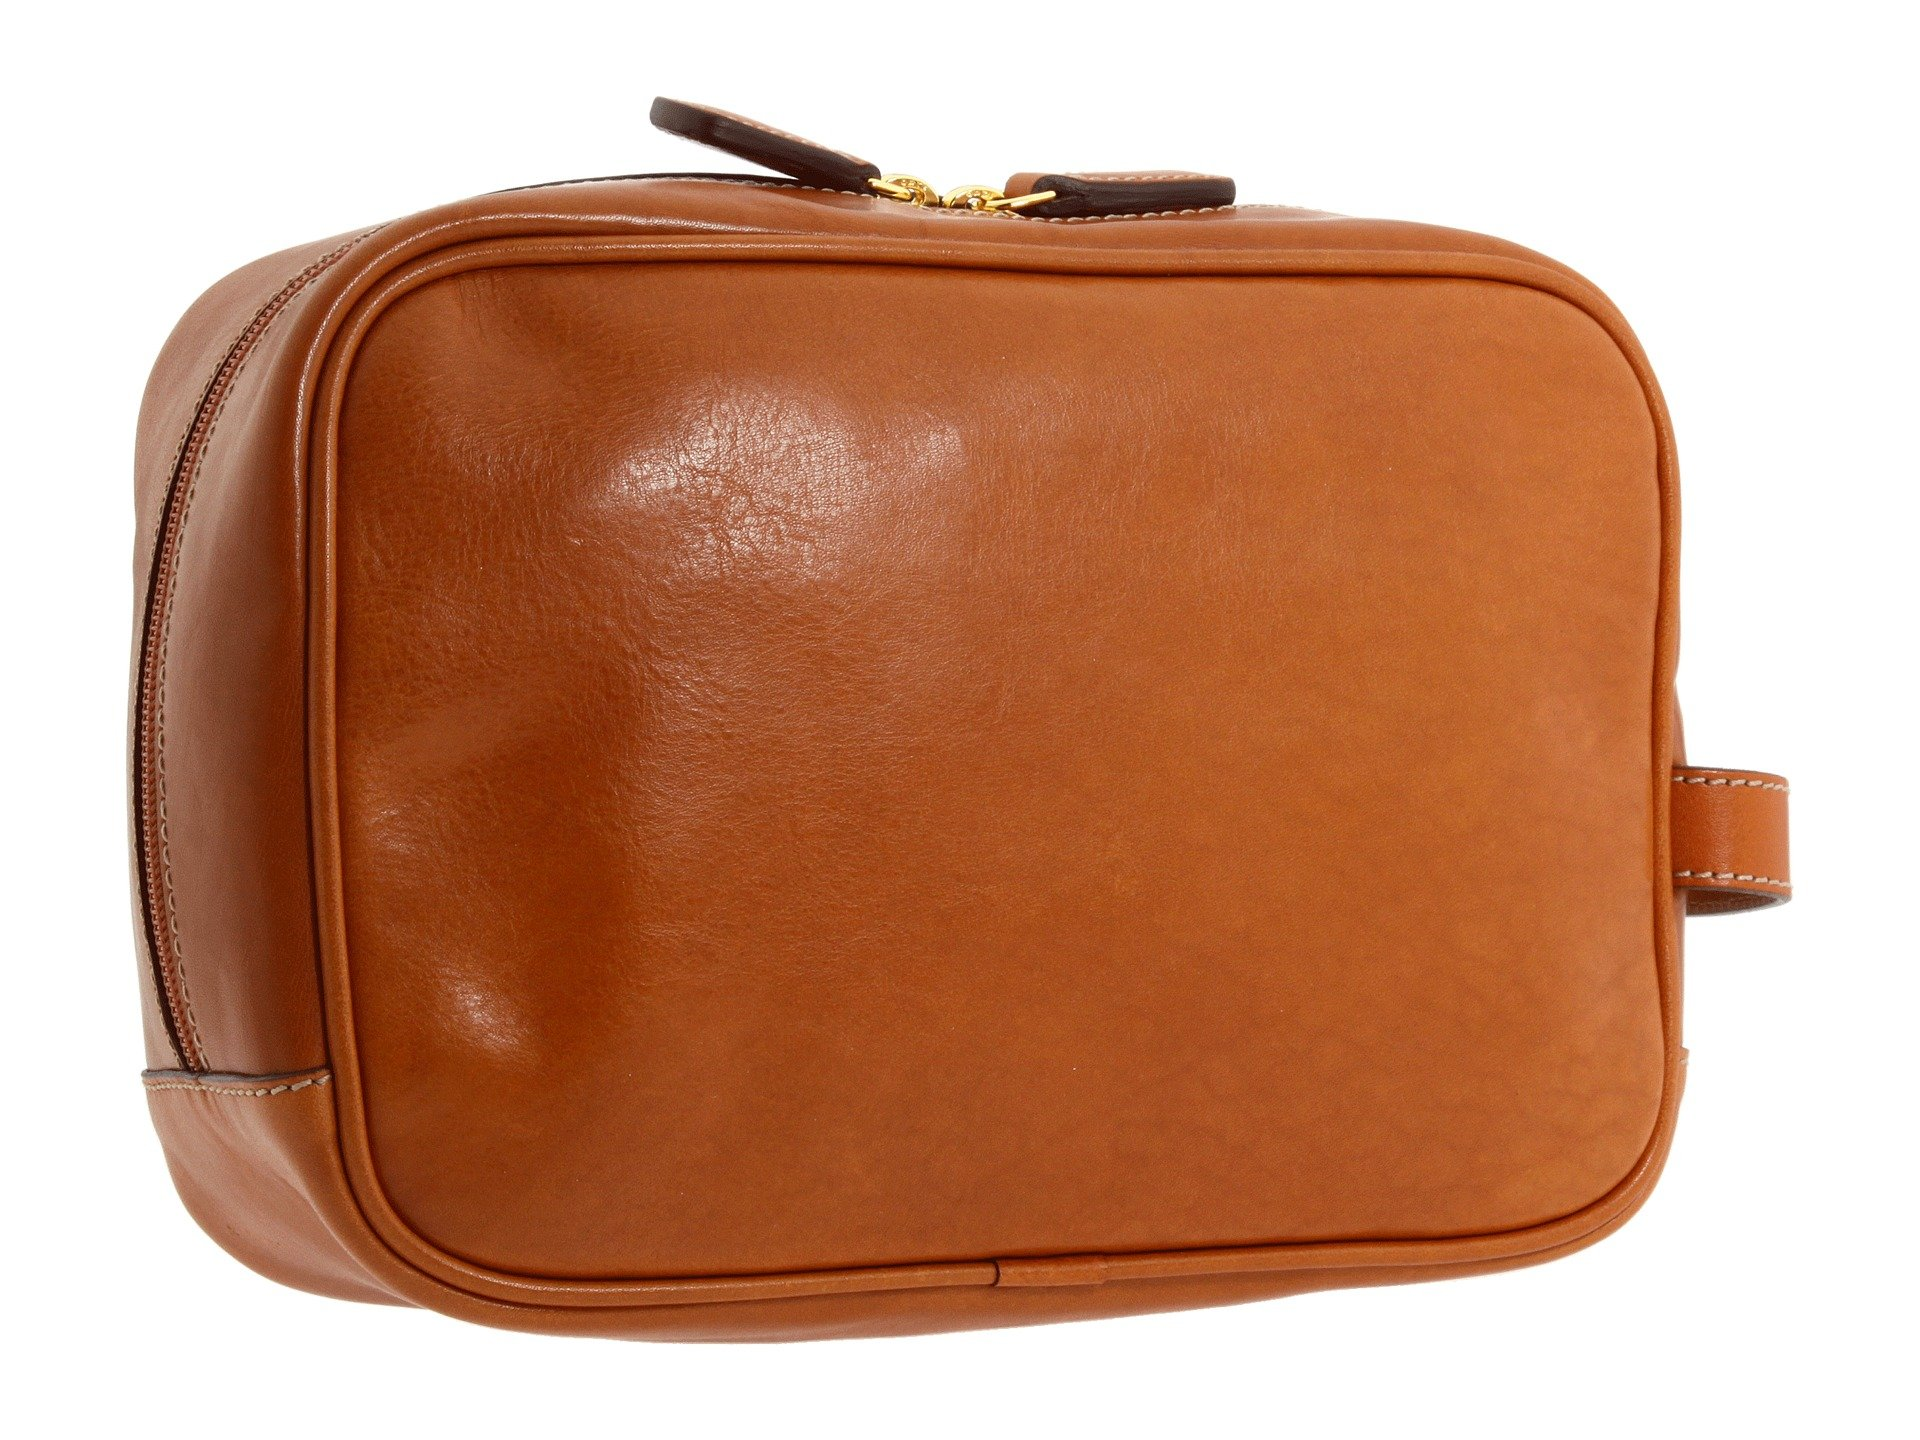 Milano Traditional leather Case Bric's Shave Leather Life Pelle Cognac Ow8nqdtU